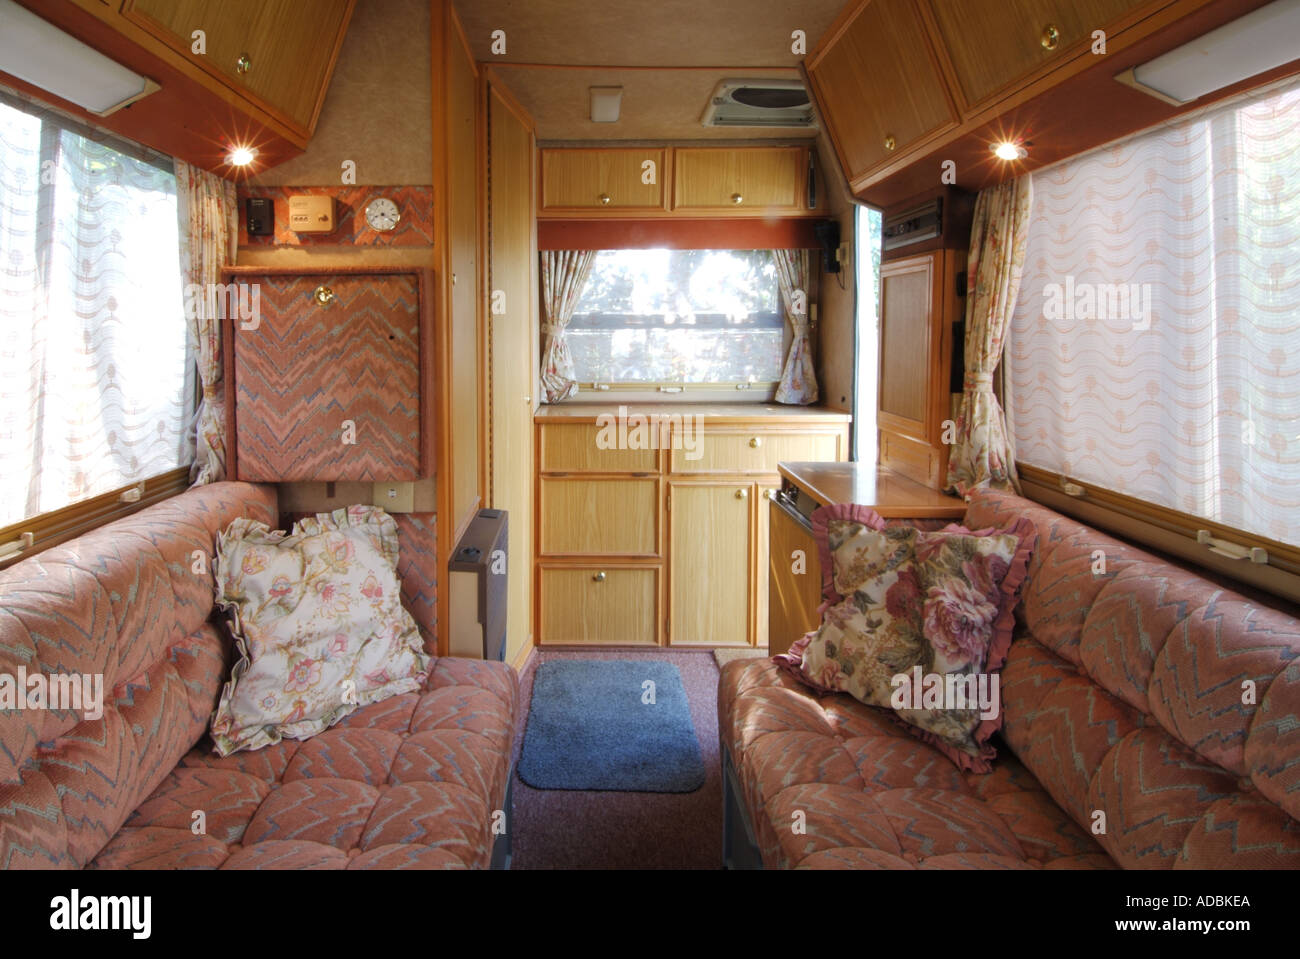 Vw Van Interior High Resolution Stock Photography And Images Alamy